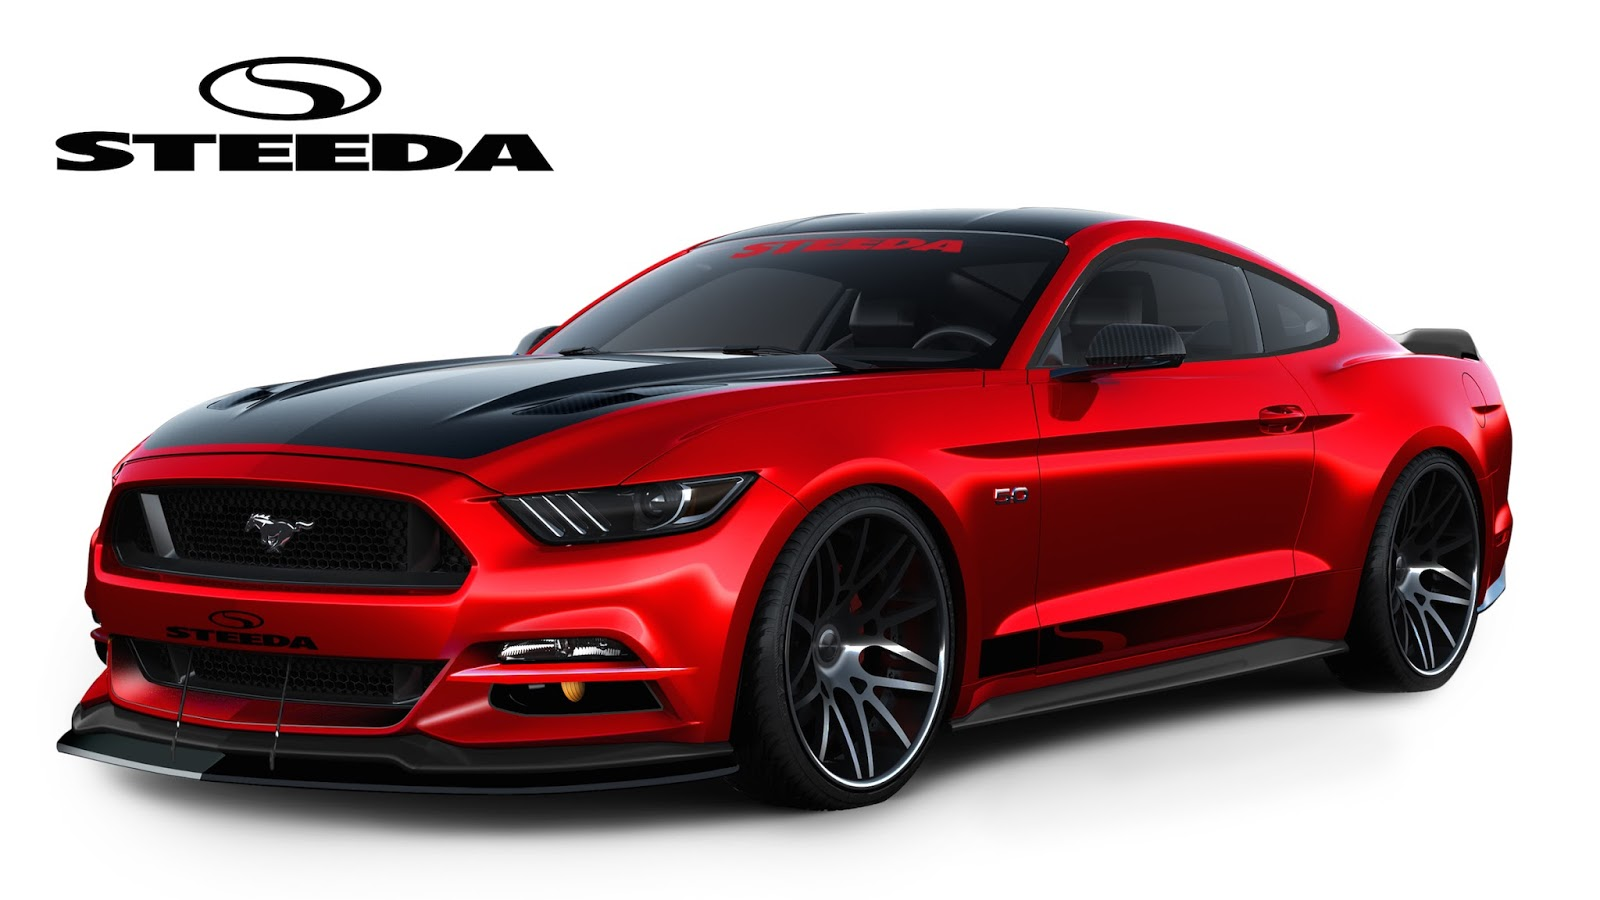 steeda previews upgraded 2015 ford mustang gtspirit. Black Bedroom Furniture Sets. Home Design Ideas